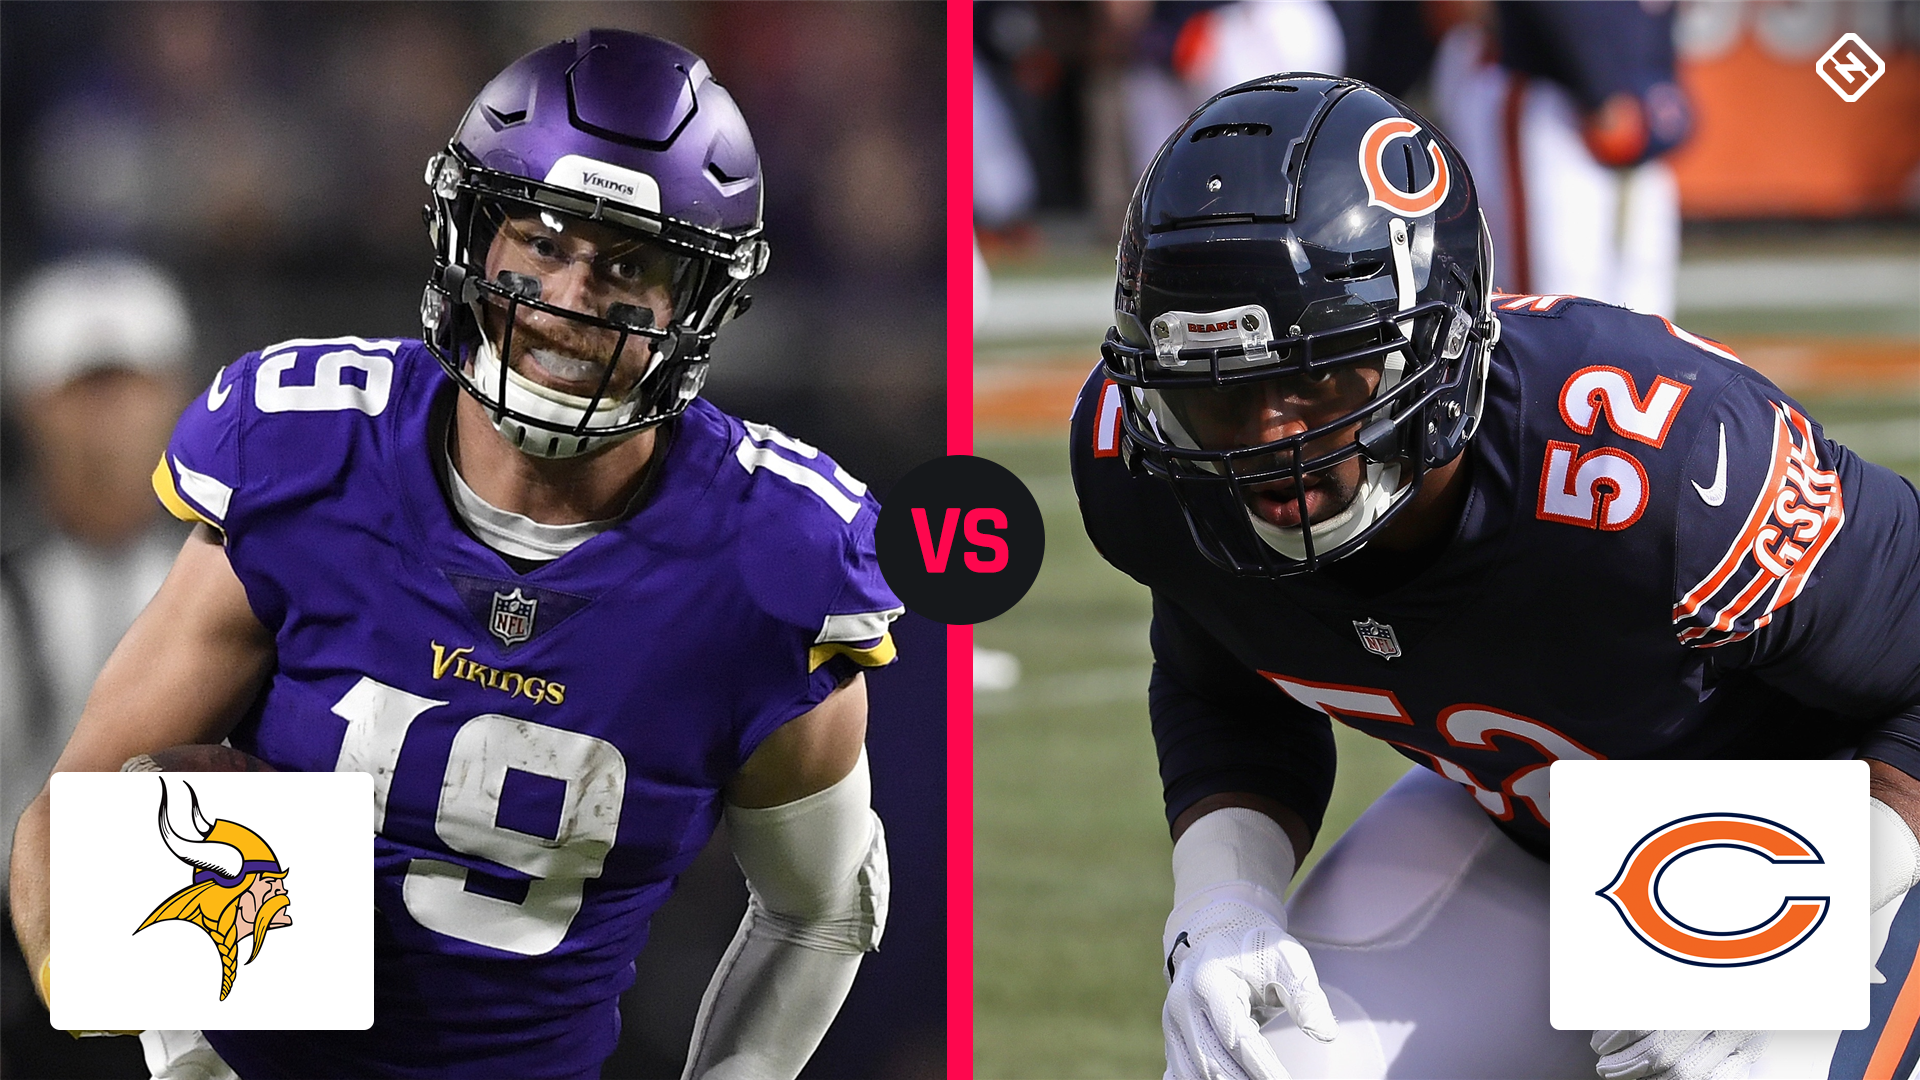 Vikings vs. Bears results: Score, live updates from Chicago's Sunday night win